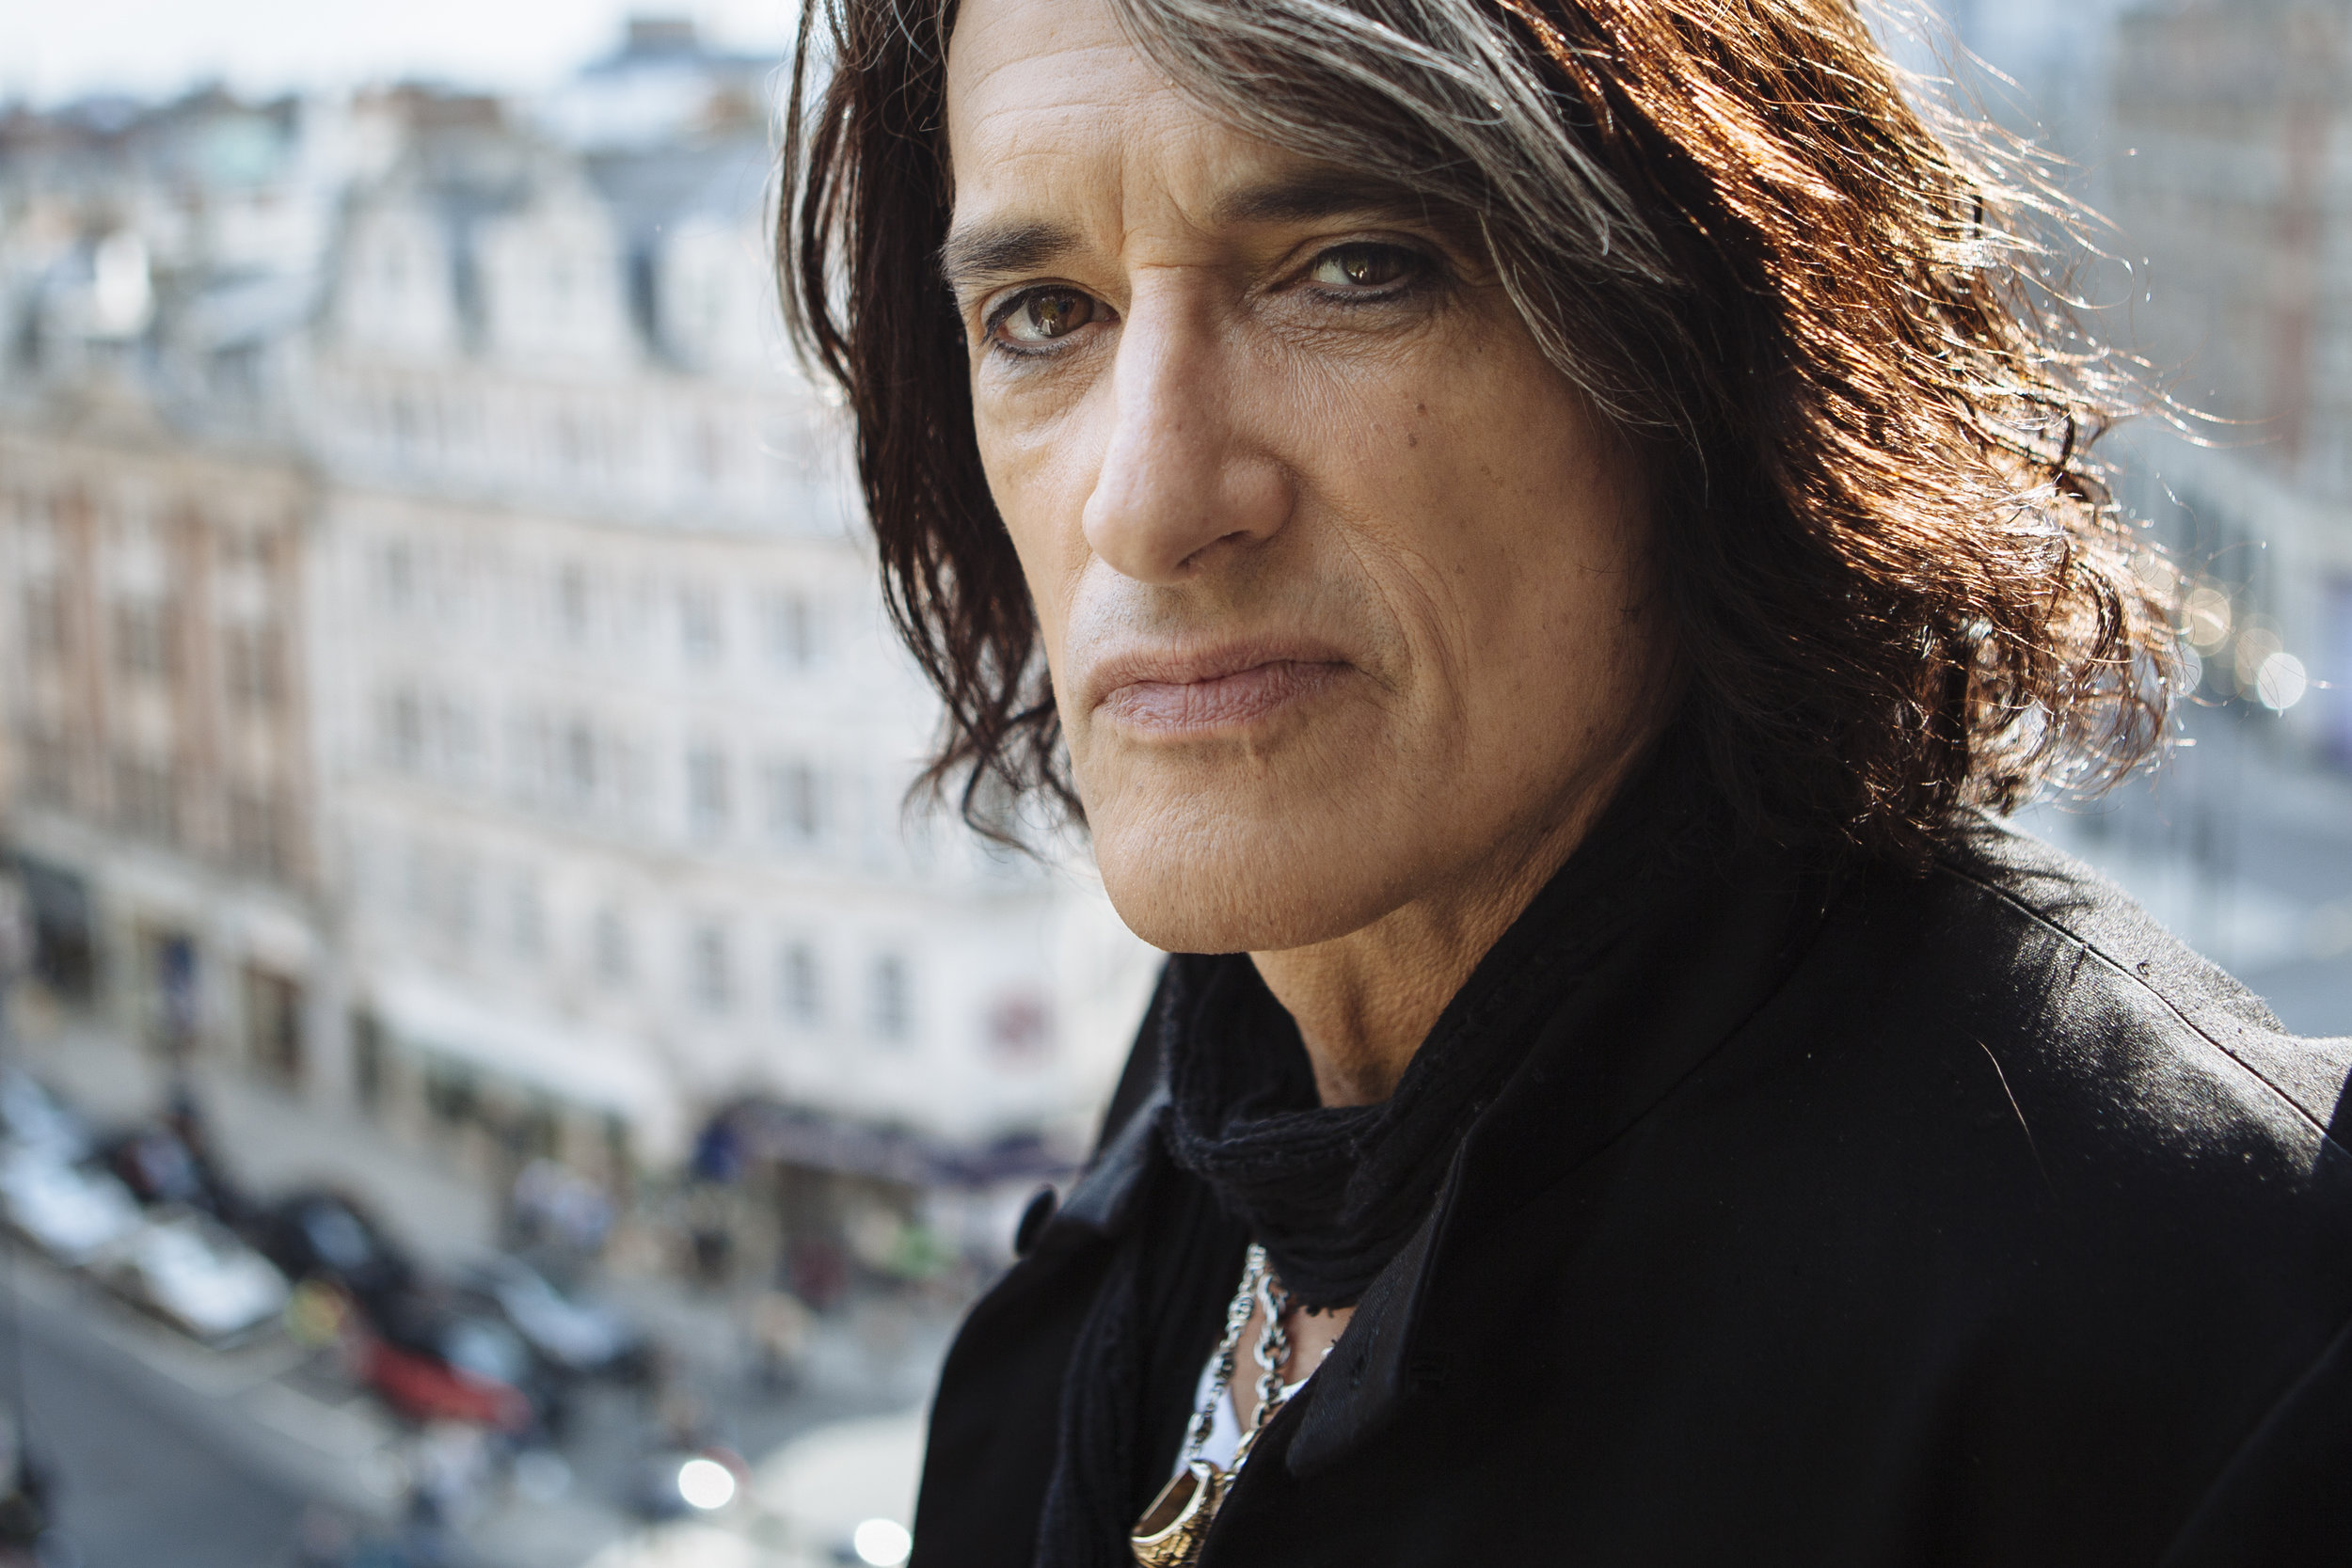 Recording artist Joe Perry of Aerosmith poses for a portrait following an interview at a hotel in central London, Monday, April 12, 2010. (AP Photo/David Azia)